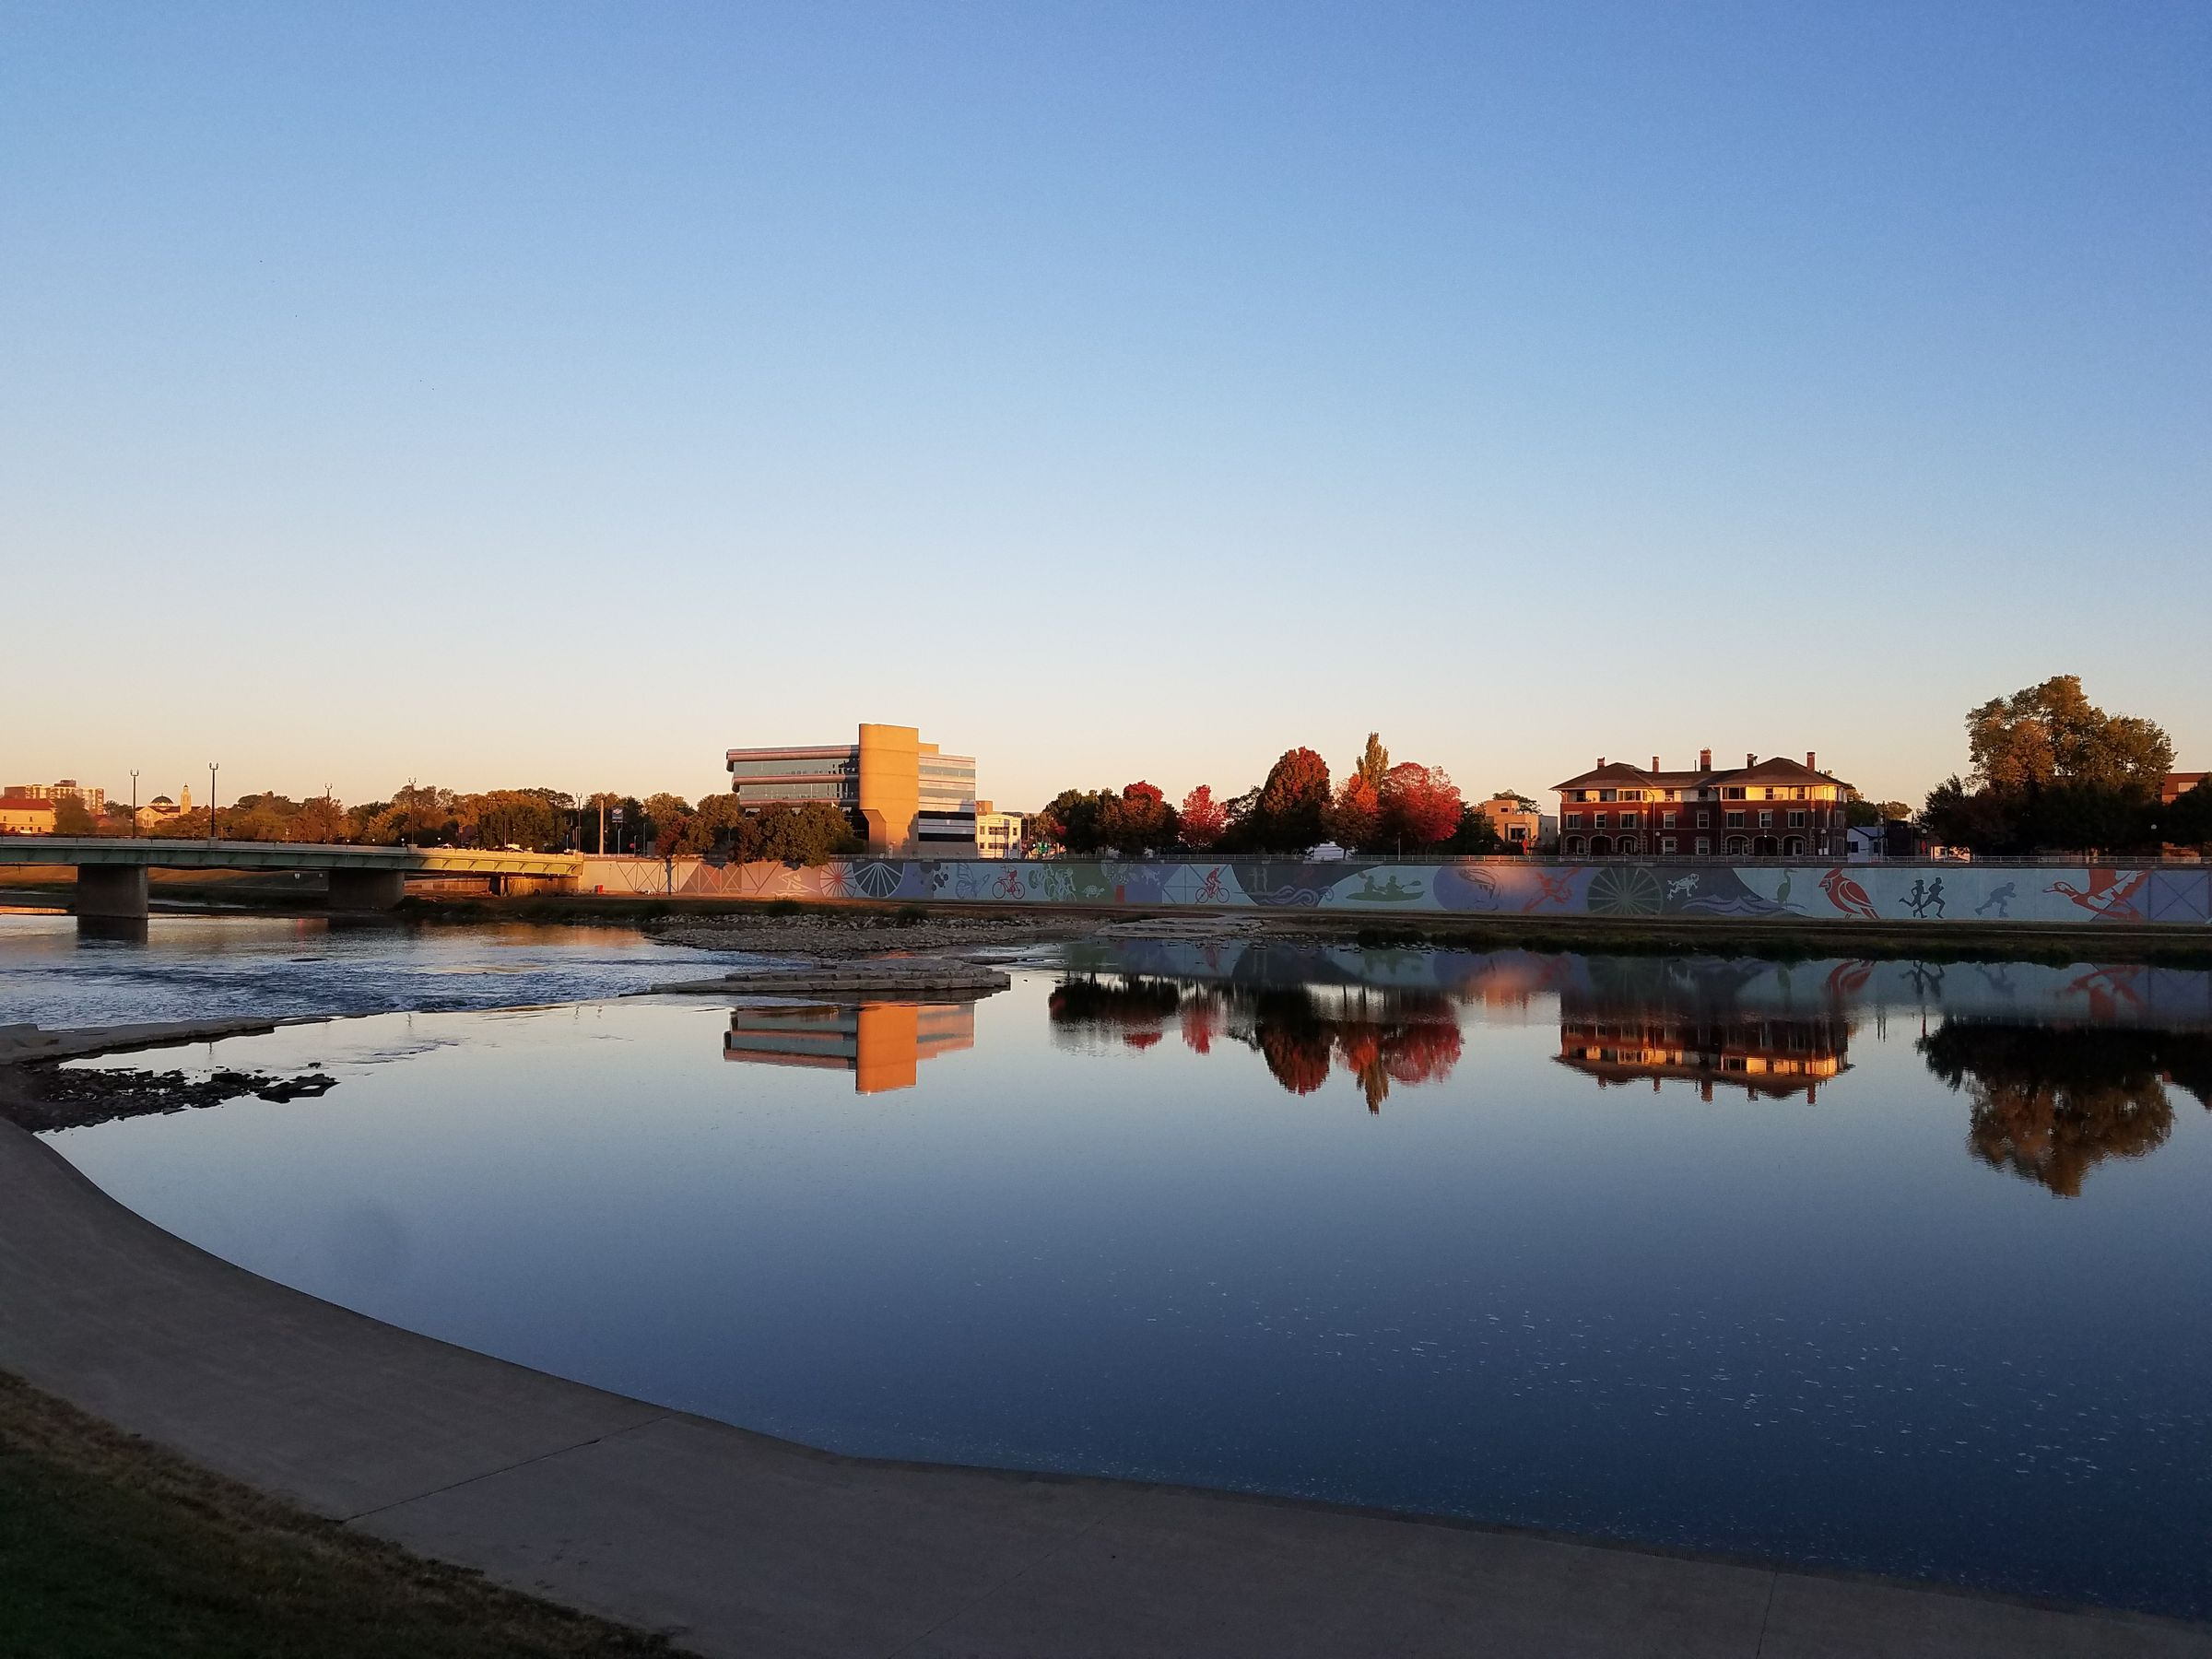 A photo taken in the morning across a quiet river. The far embankment is covered in a mural depicting birds, fish, and outdoor activities like running, cycling, and ice skating. The sky is clear, and the sun is just starting to strike the opposite bank.